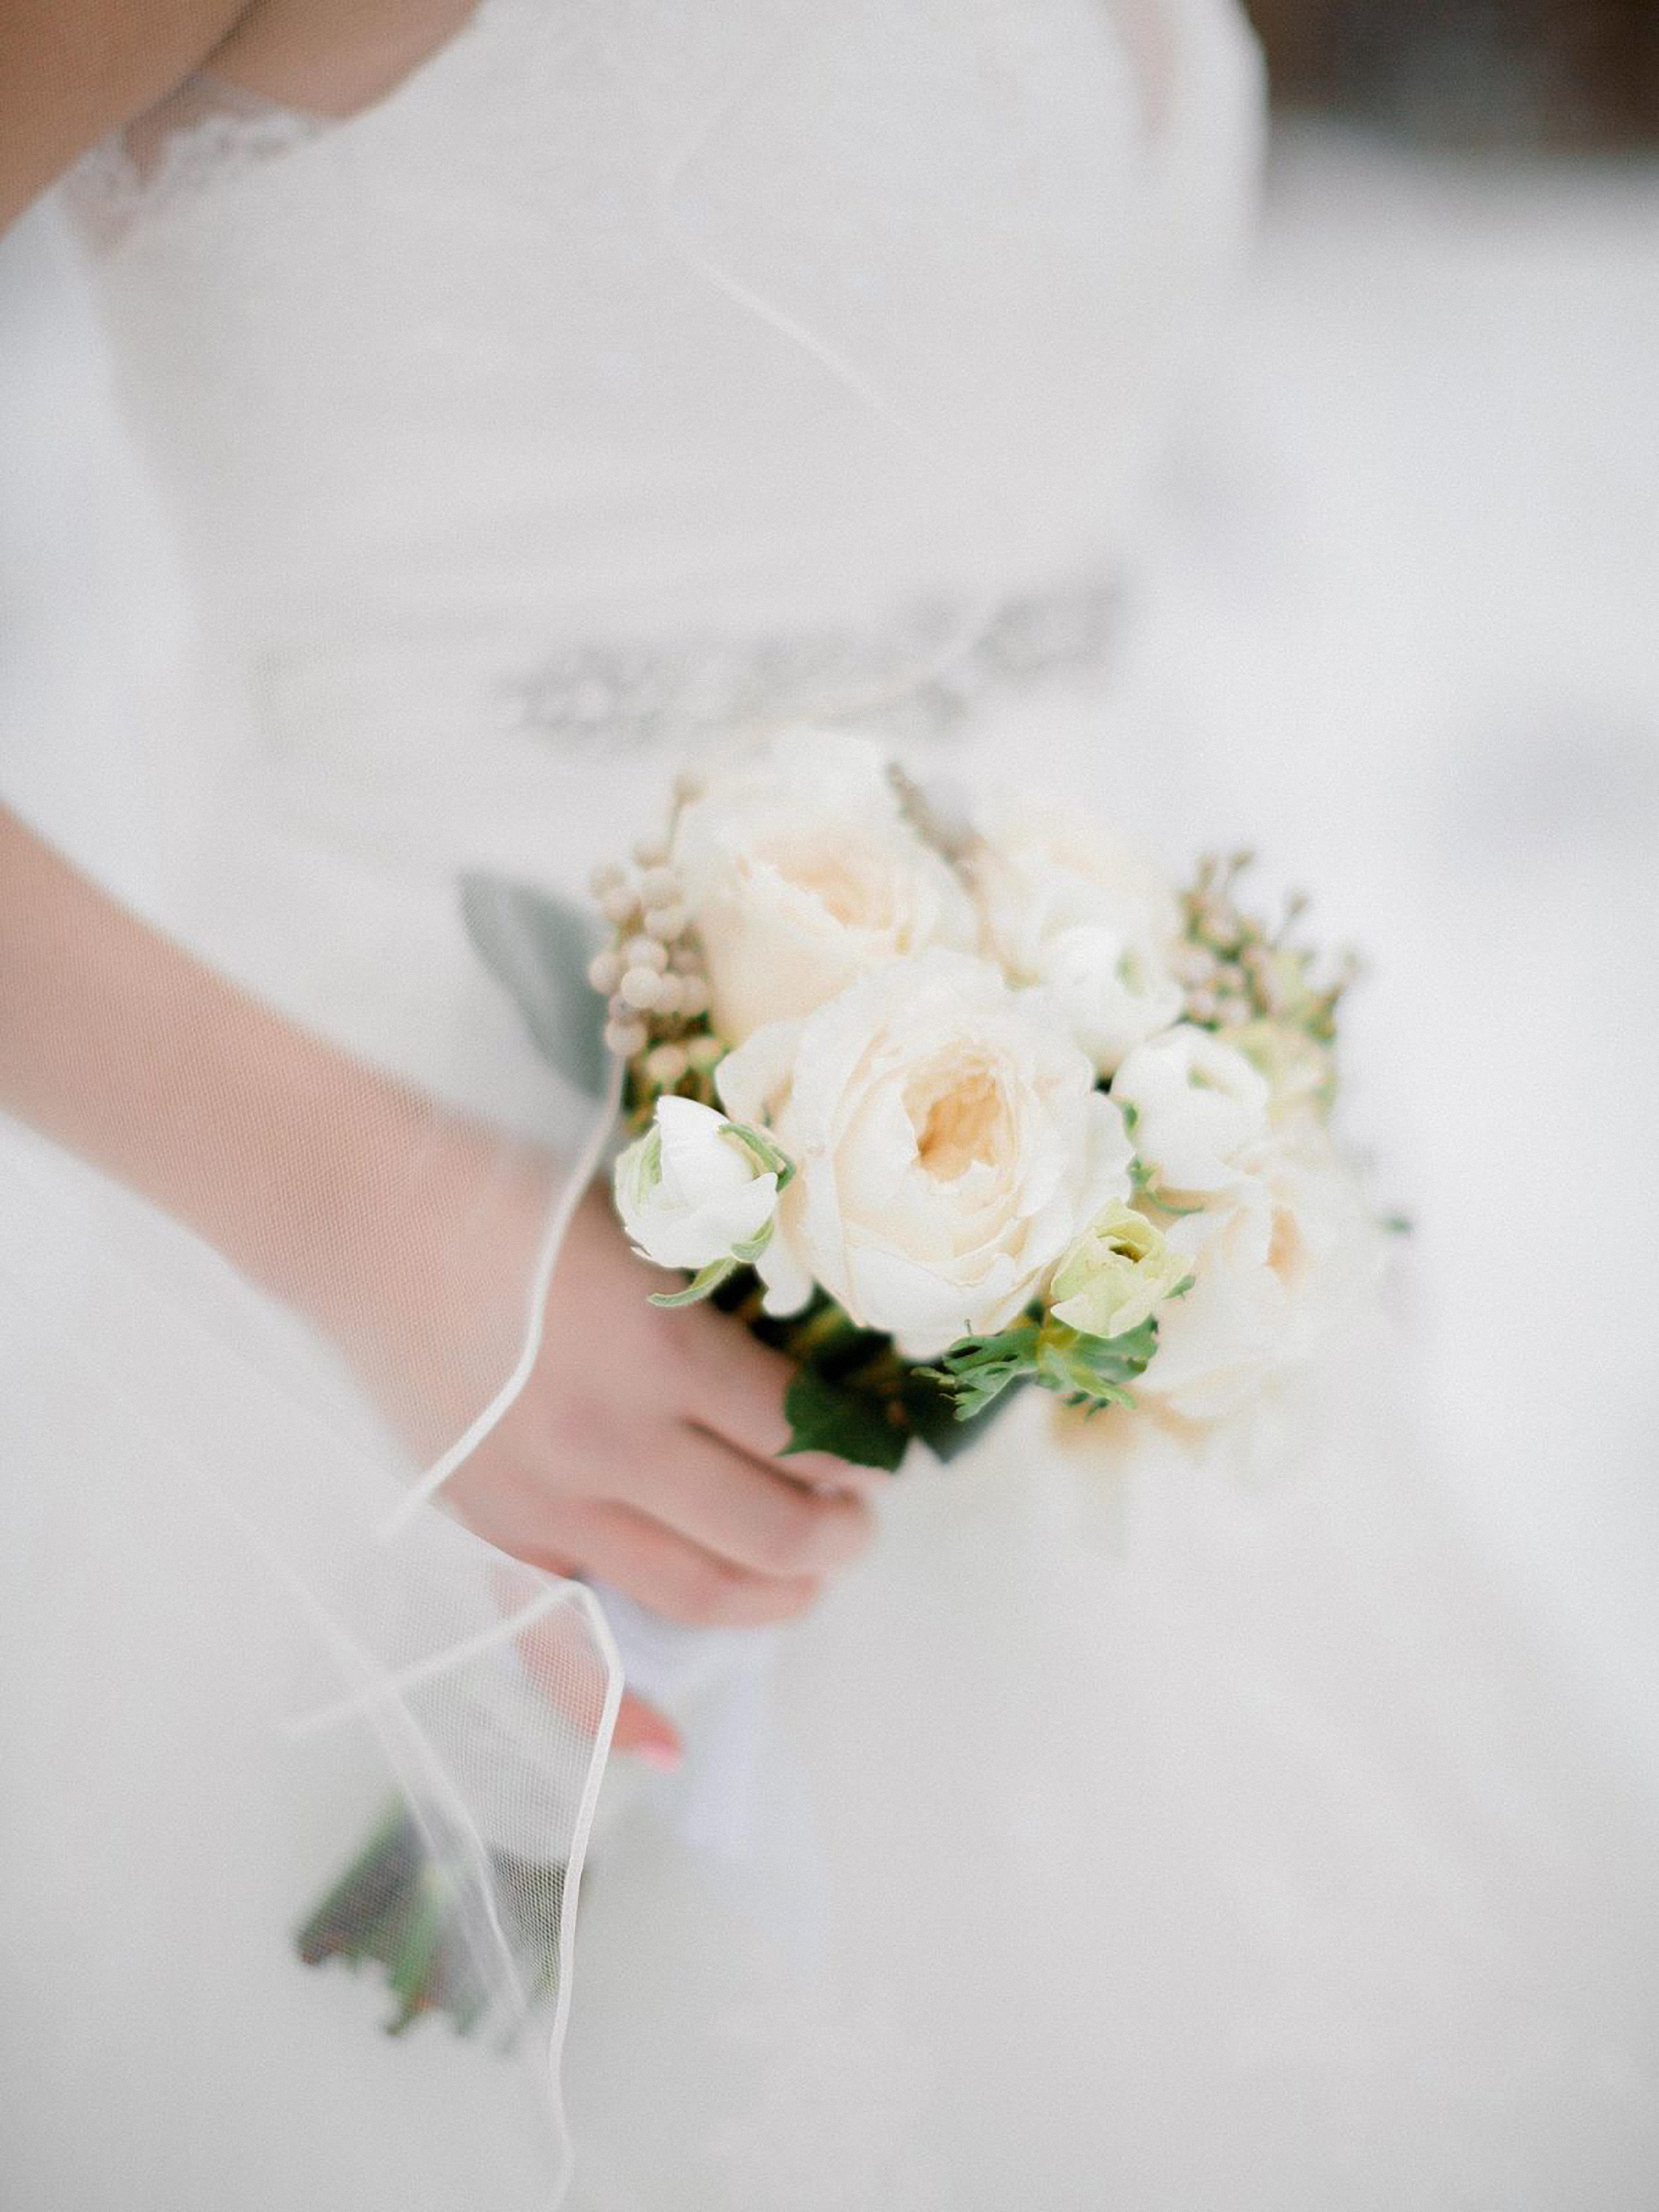 small bouquet with garden roses